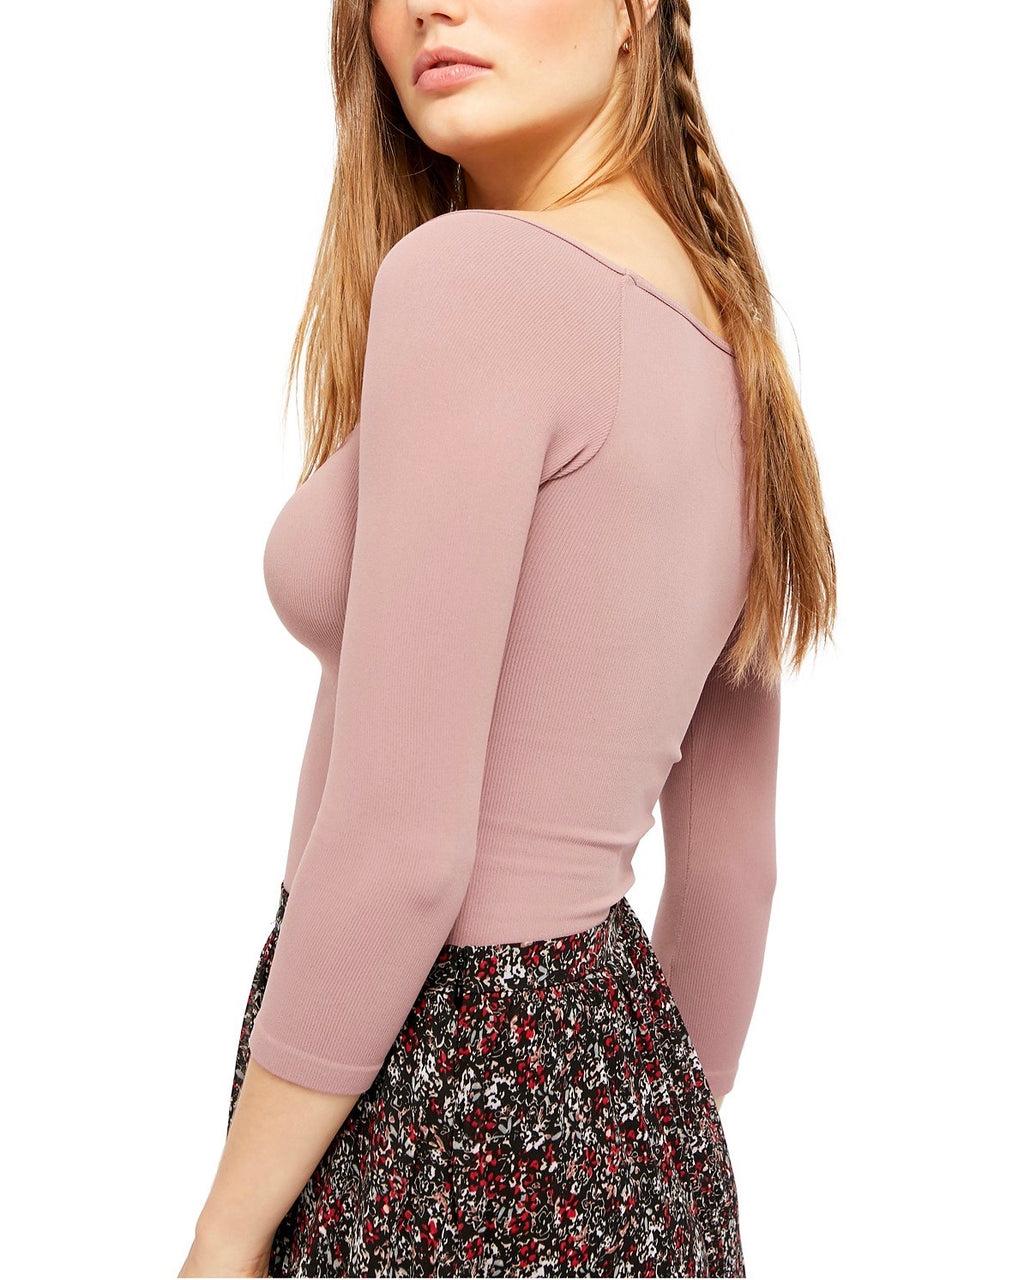 Free People - Square Neck 3/4 Sleeve Top in Mauve